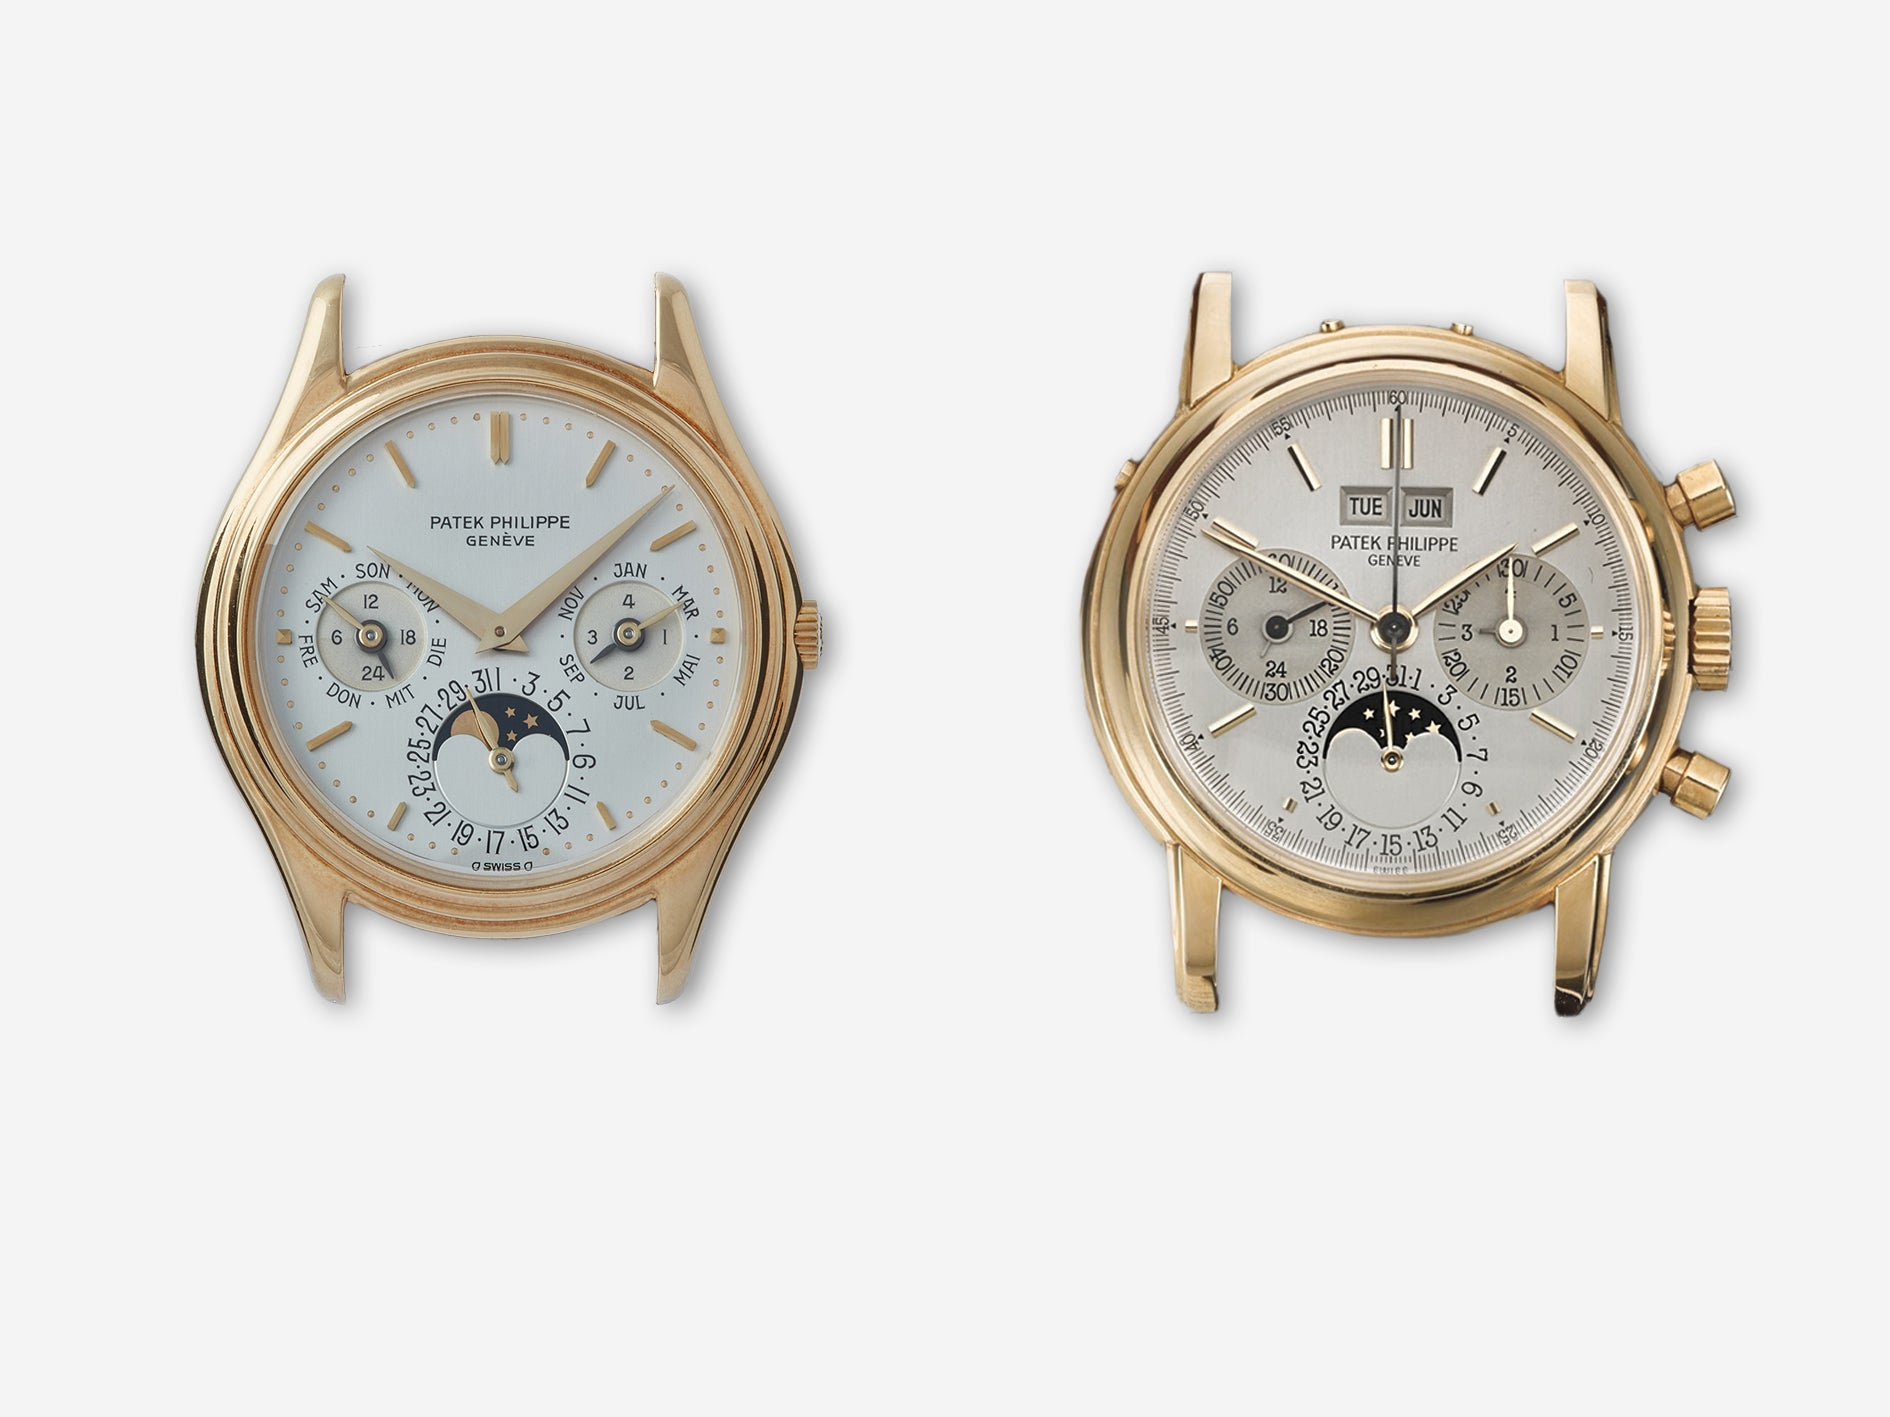 First series Patek Philippe 3940 and Patek Philippe 3970 side by side